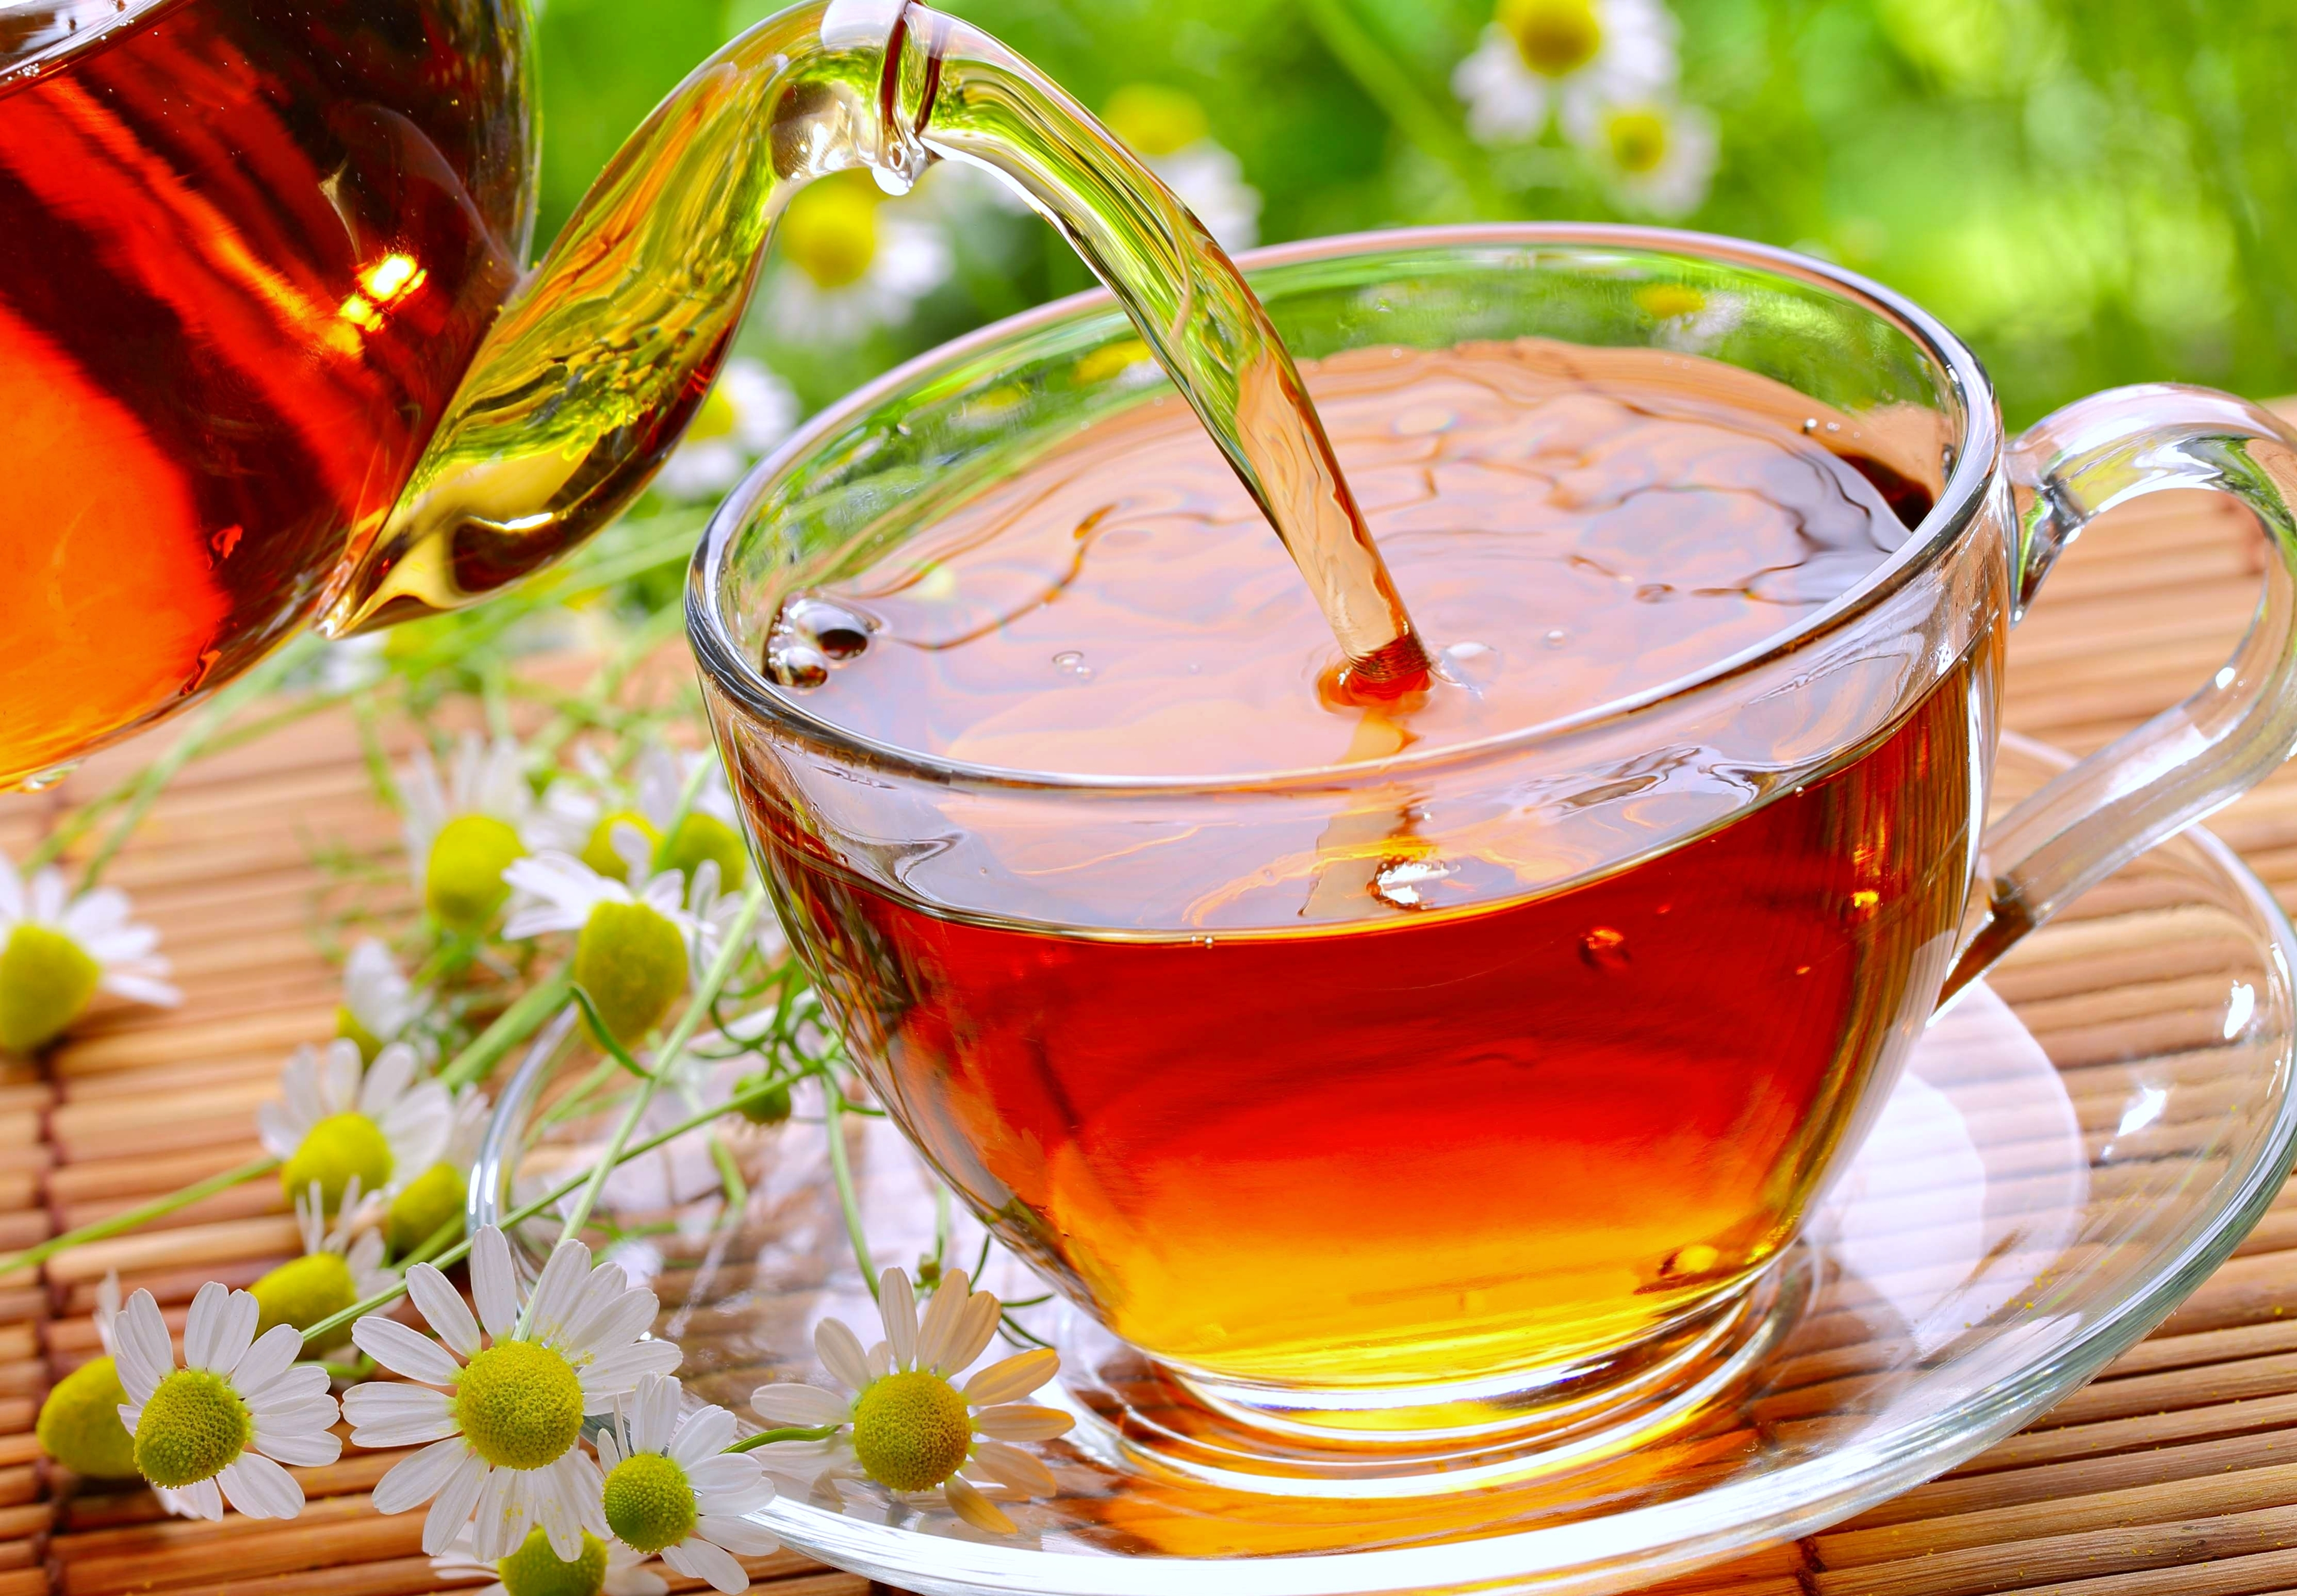 Cup Of Tea 4k Ultra Hd Wallpaper Background Image 3840x2668 Id 595810 Wallpaper Abyss